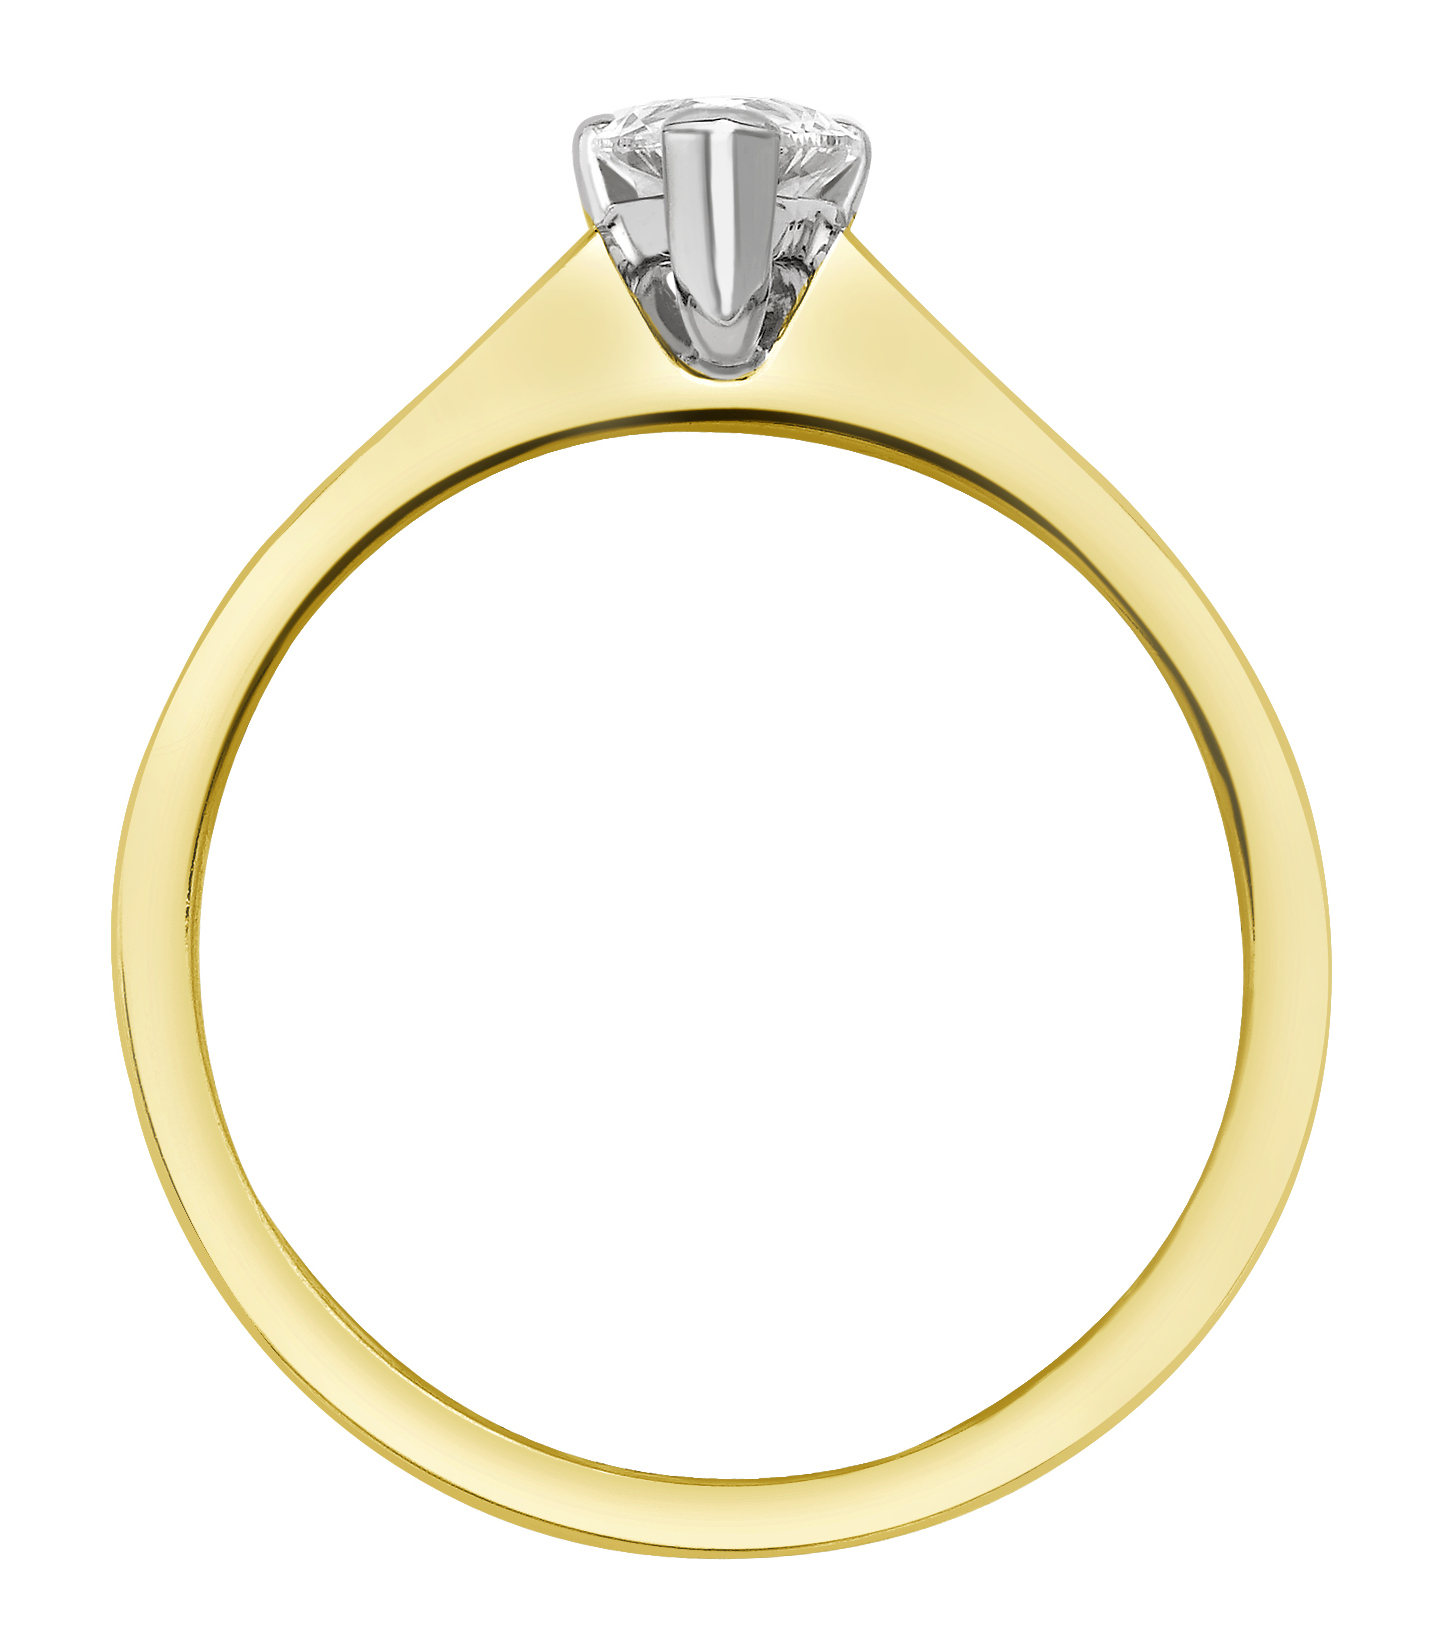 Marquise Cut Yellow Gold Ring with Channel Set Shoulders GRC751YG Image 2